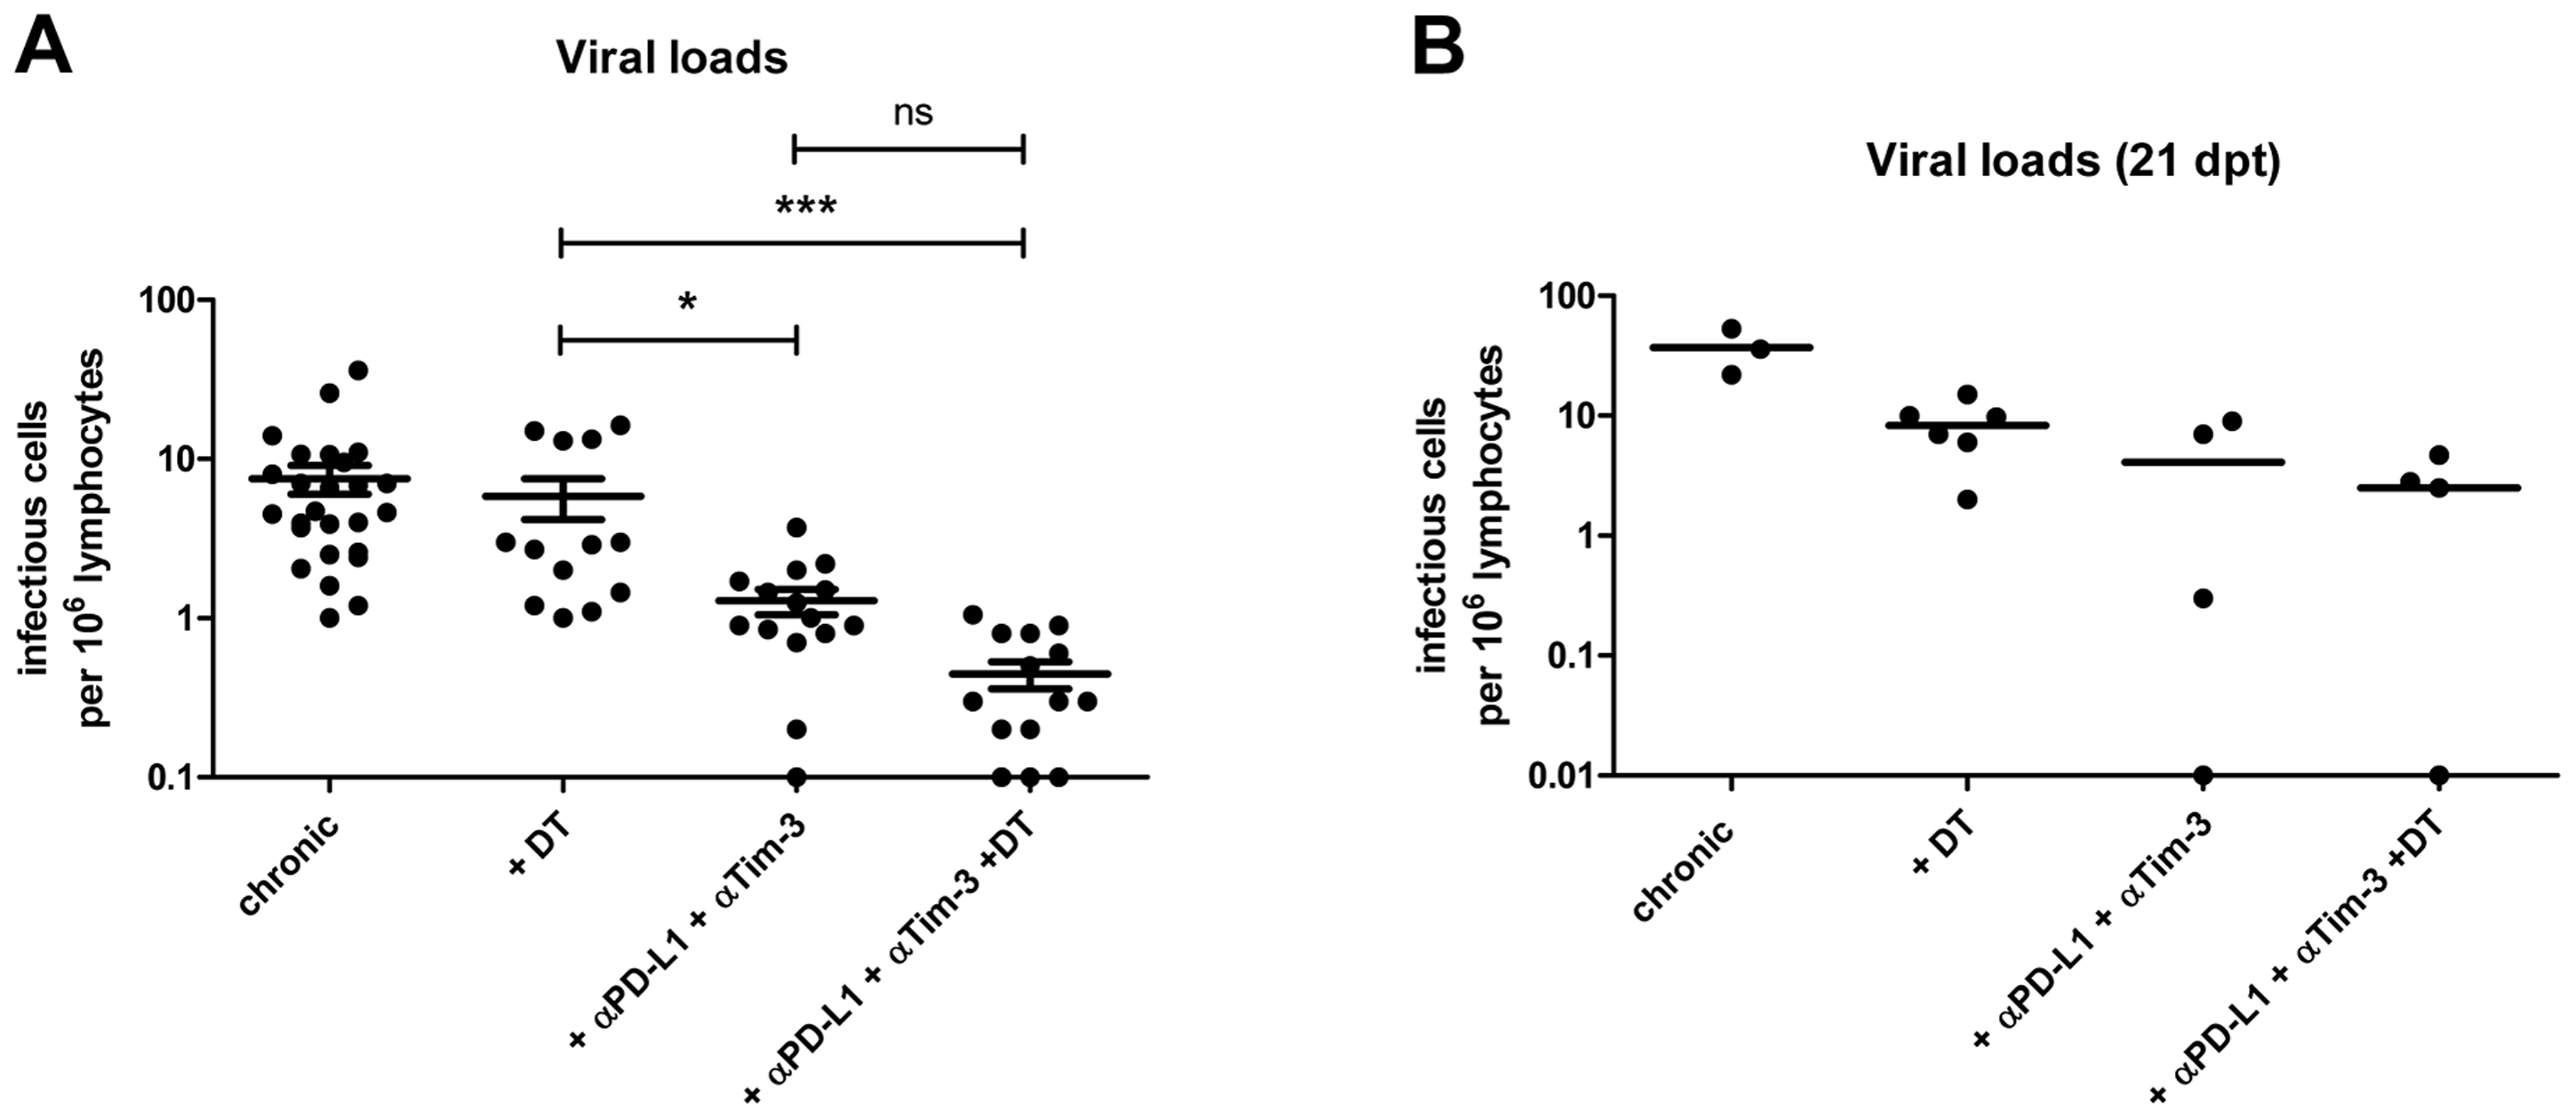 Viral loads in chronic infection after Treg depletion and/or blocking of inhibitory pathways.